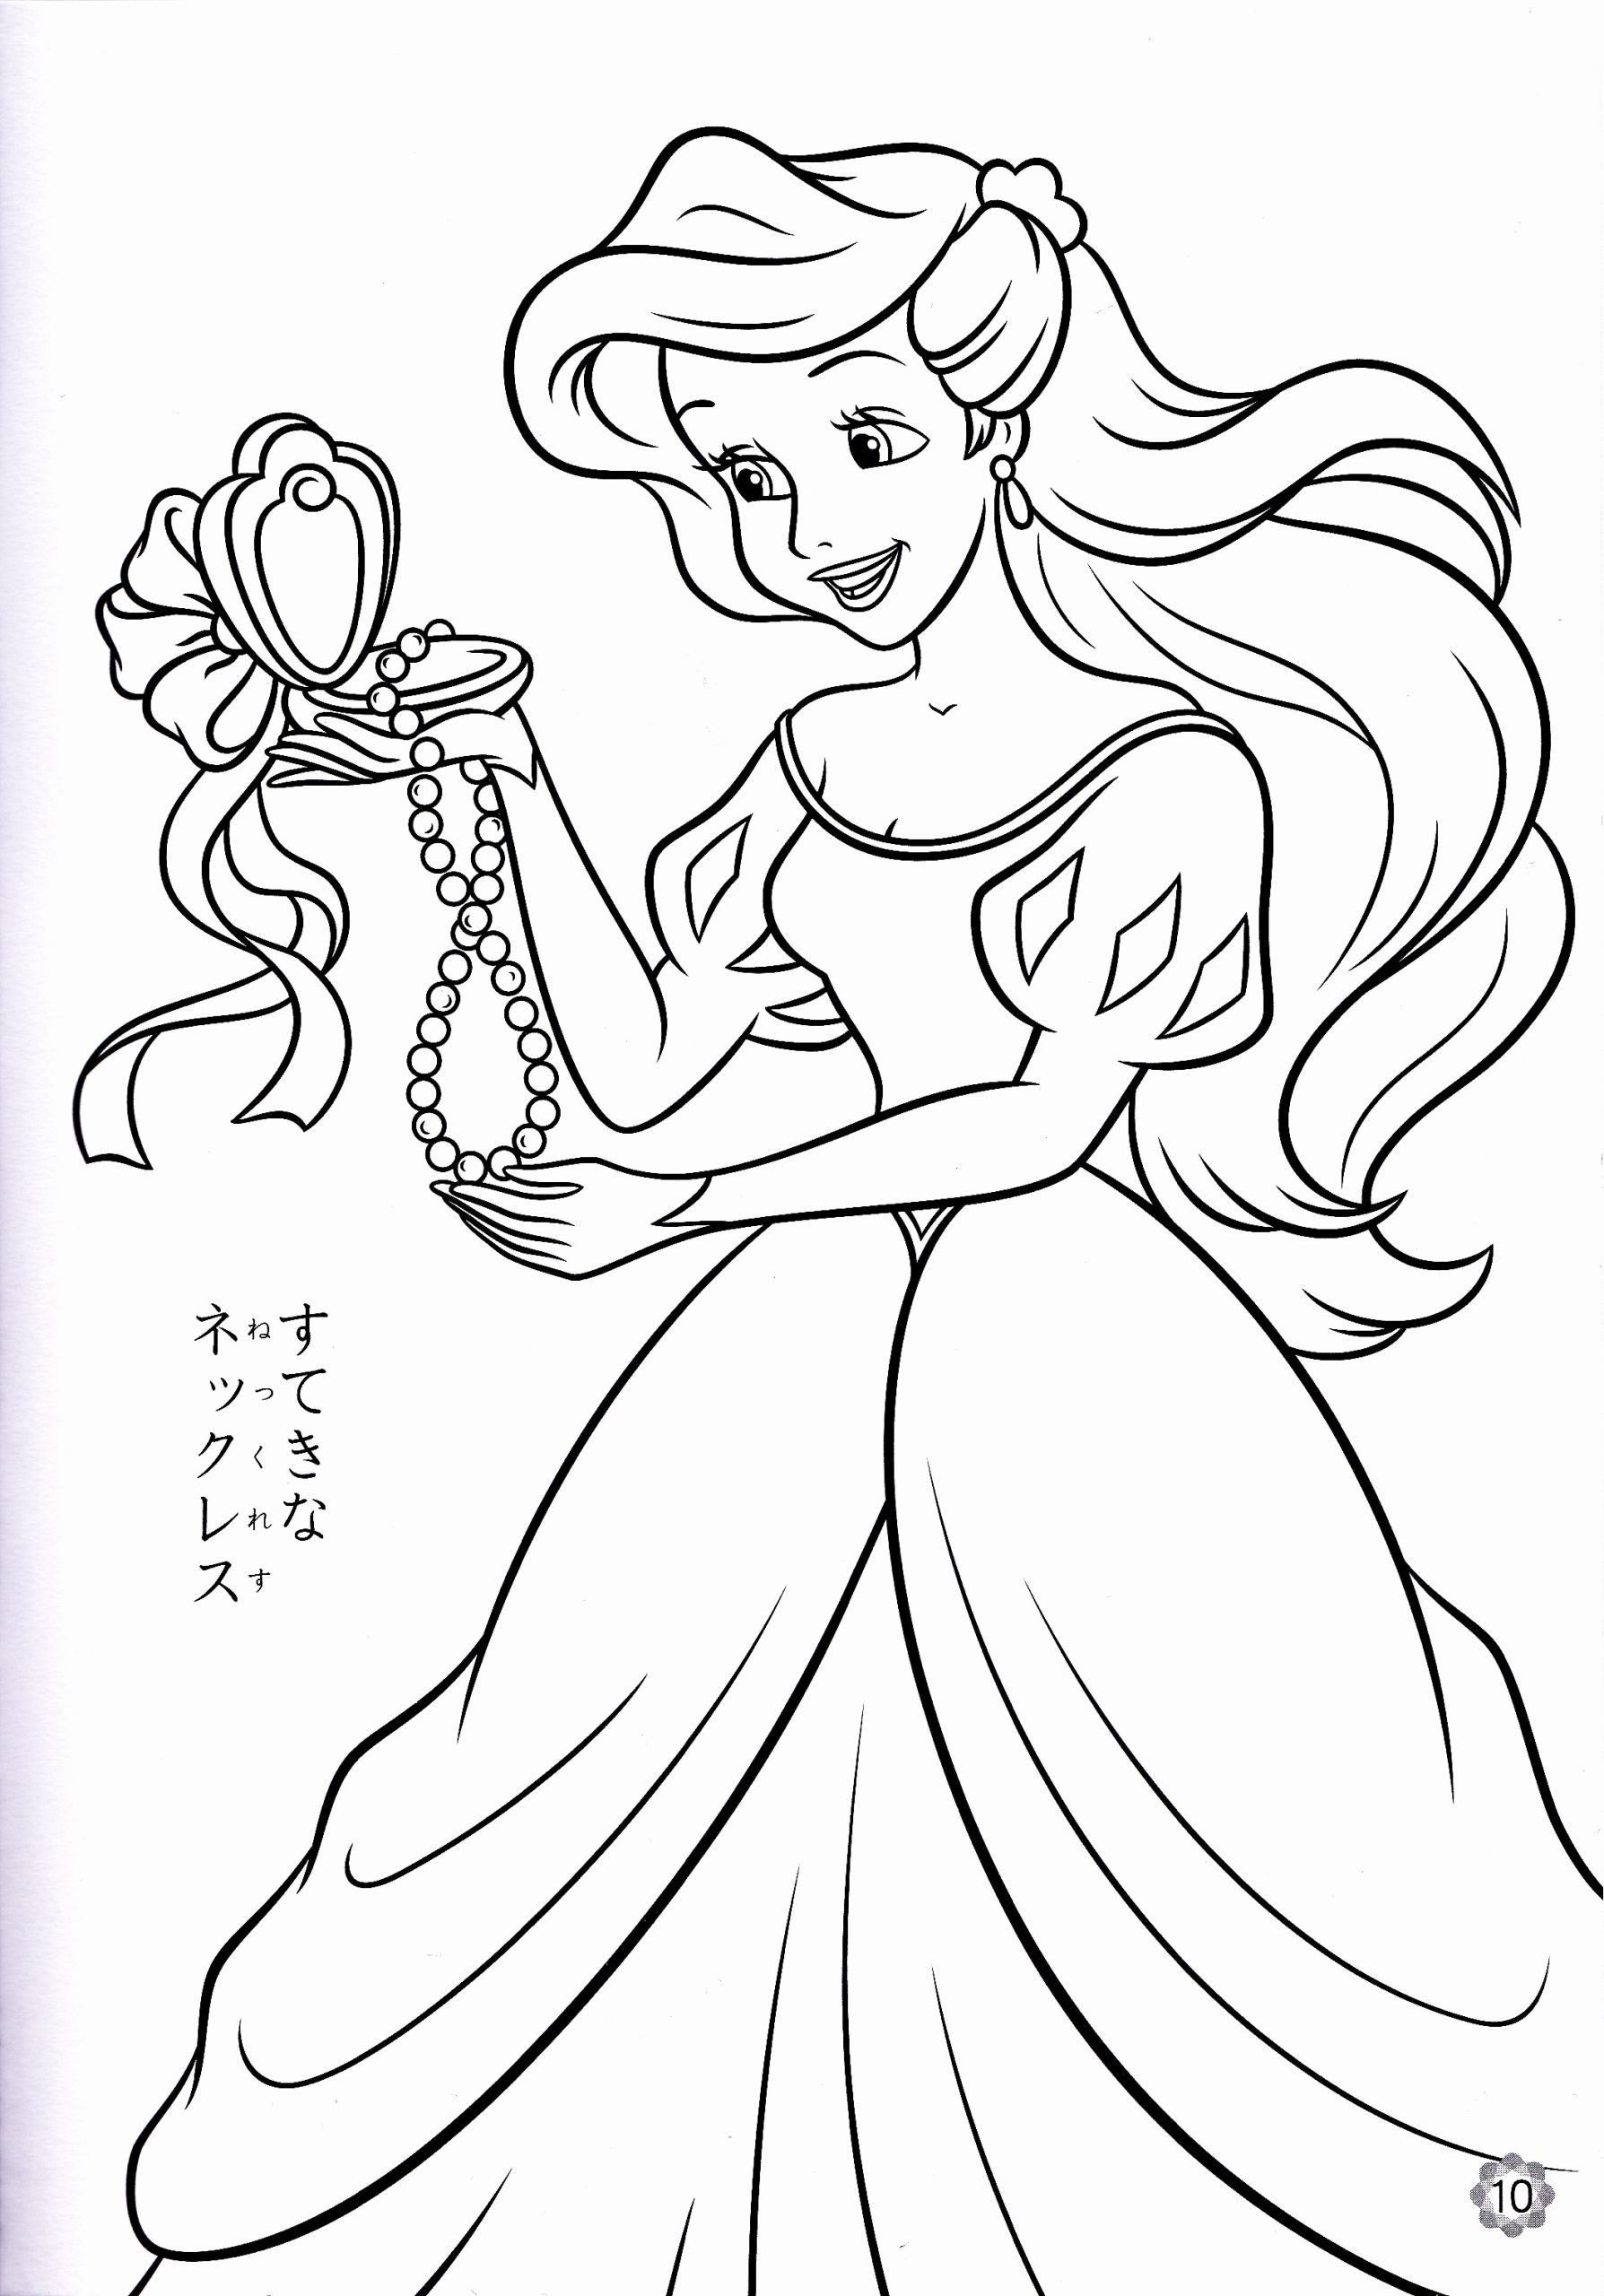 Disney Princess Online Coloring Awesome Free Printable Disney Coloring Books Ariel Coloring Pages Mermaid Coloring Pages Disney Coloring Sheets